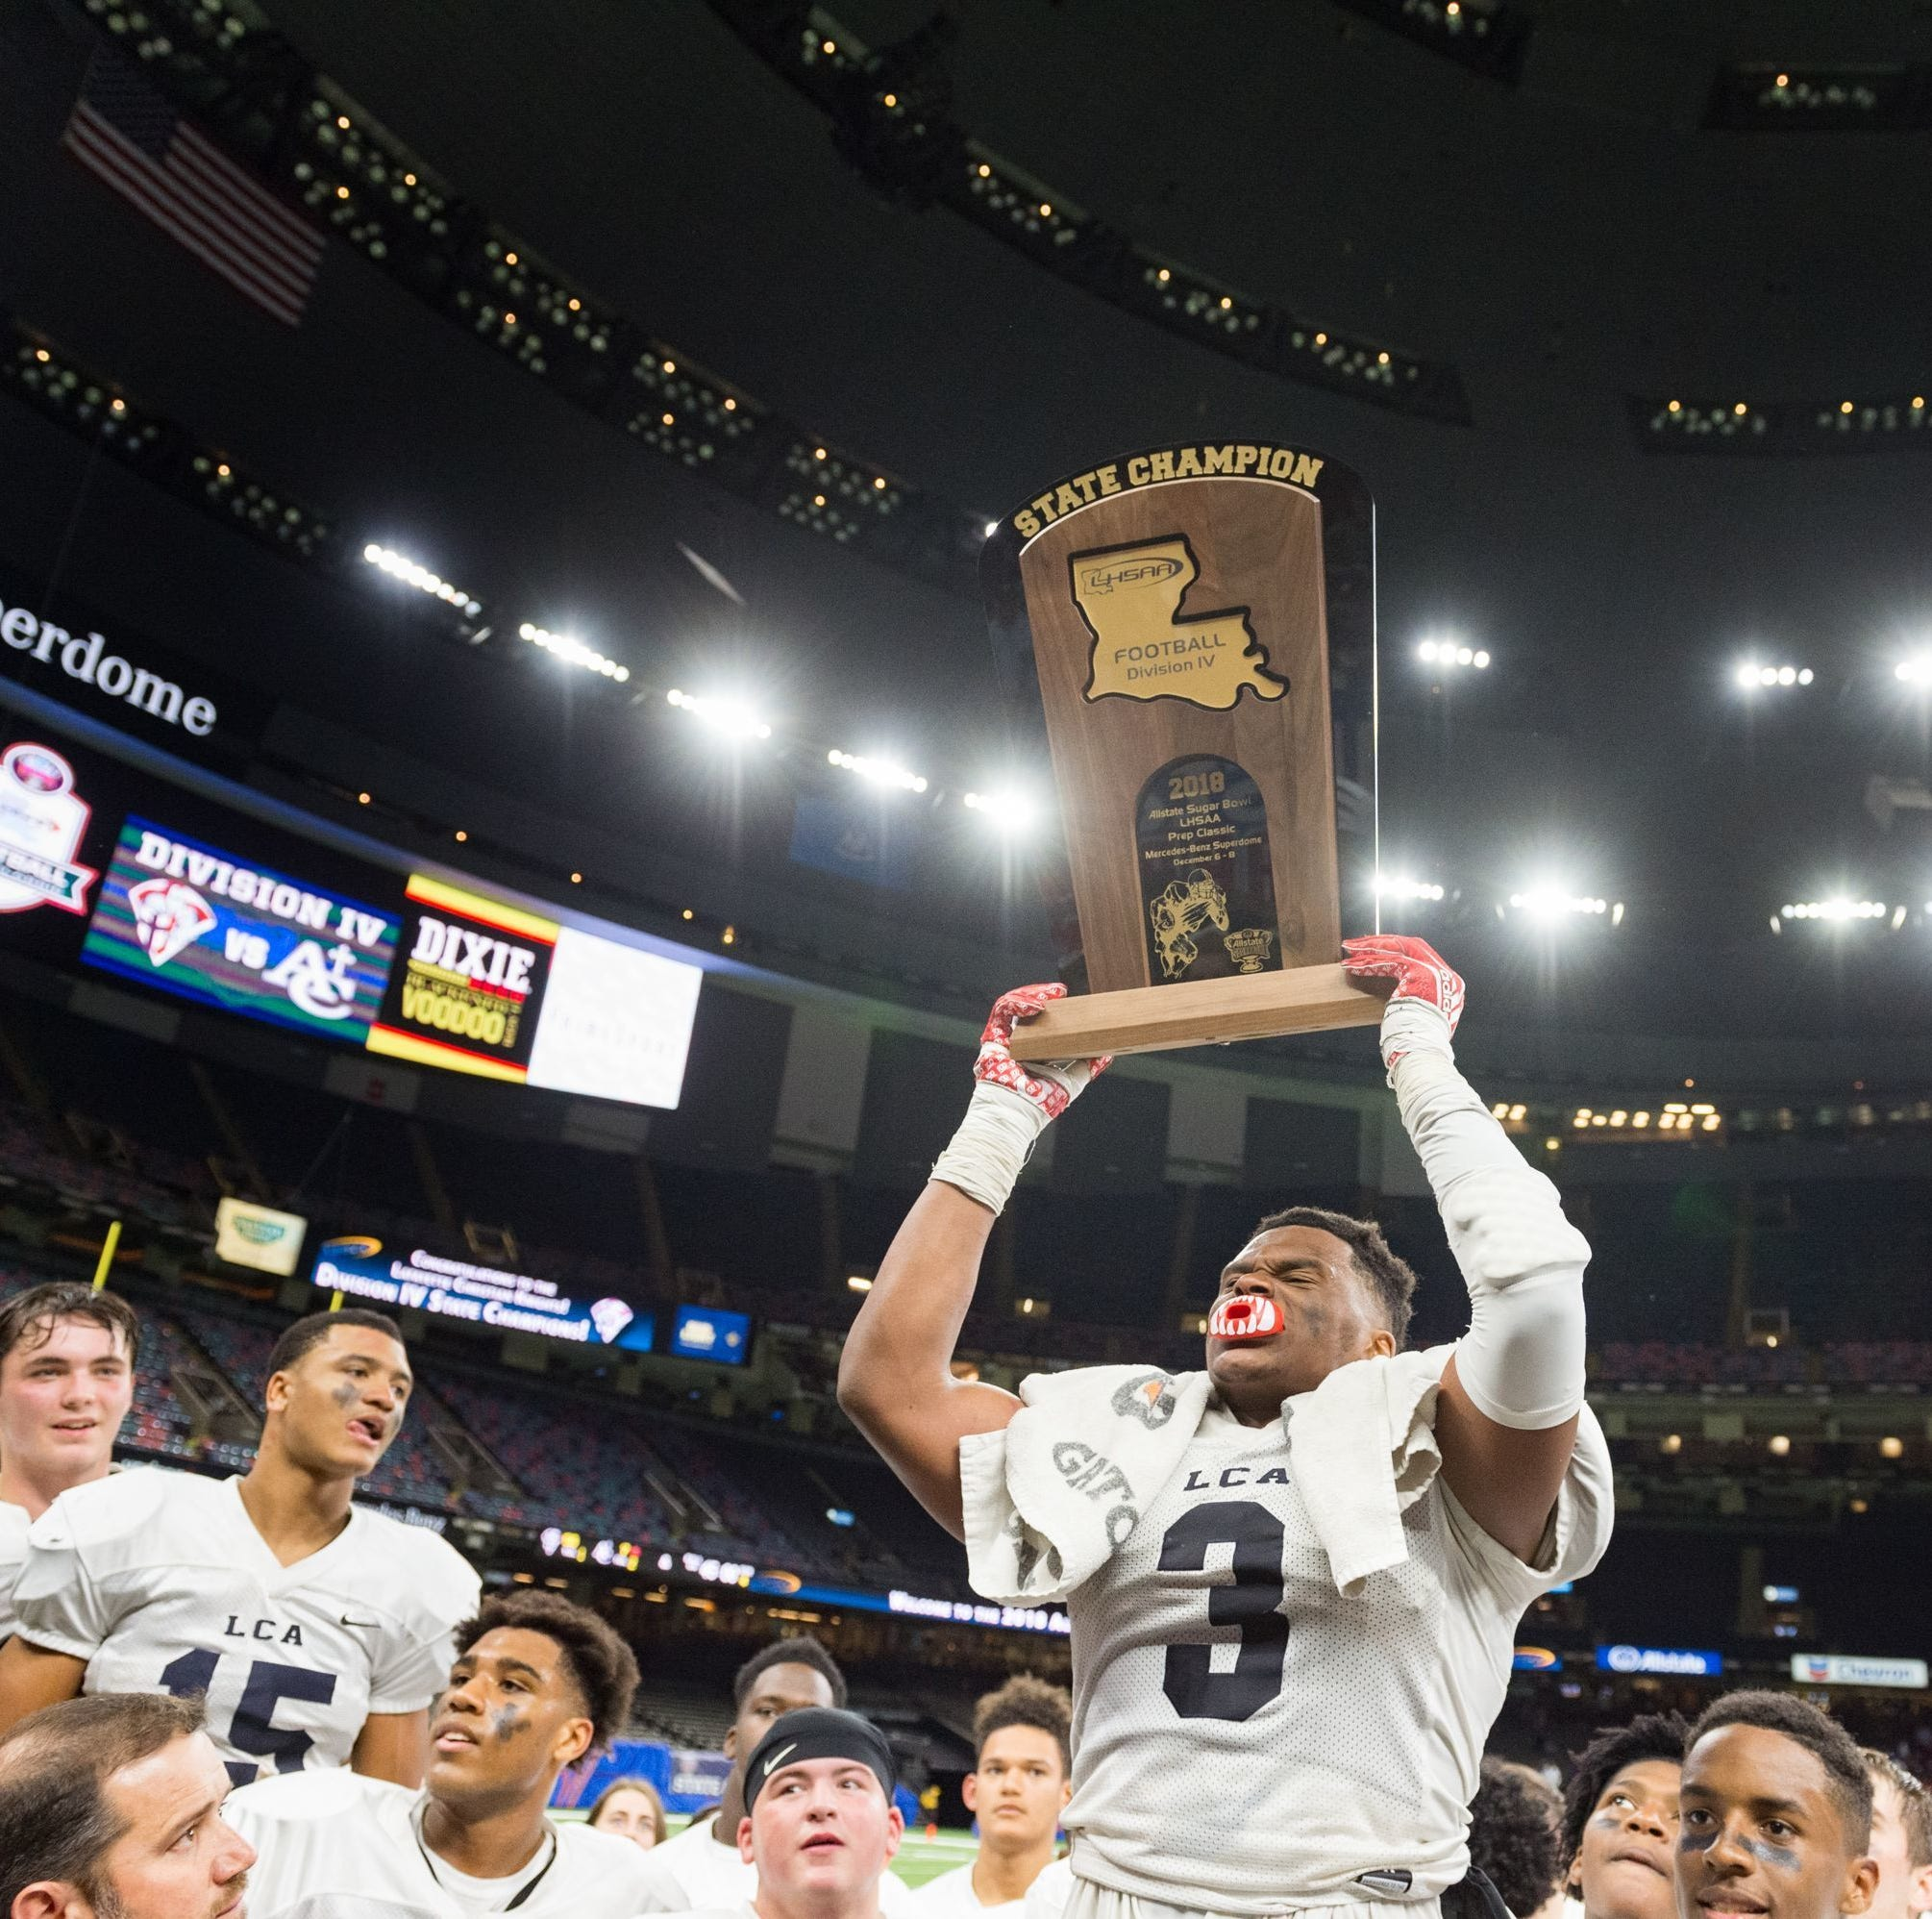 Lafayette Christian senior linebacker Martin Lee raises the Division IV state championship trophy on Dec. 6.  SCOTT CLAUSE/USA TODAY Network Lafayette Christian senior linebacker Martin Lee raises the Division IV state championship trophy after LCA beat Ascension Catholic 56-7 in the Mercedes-Benz Superdome on Dec. 6.